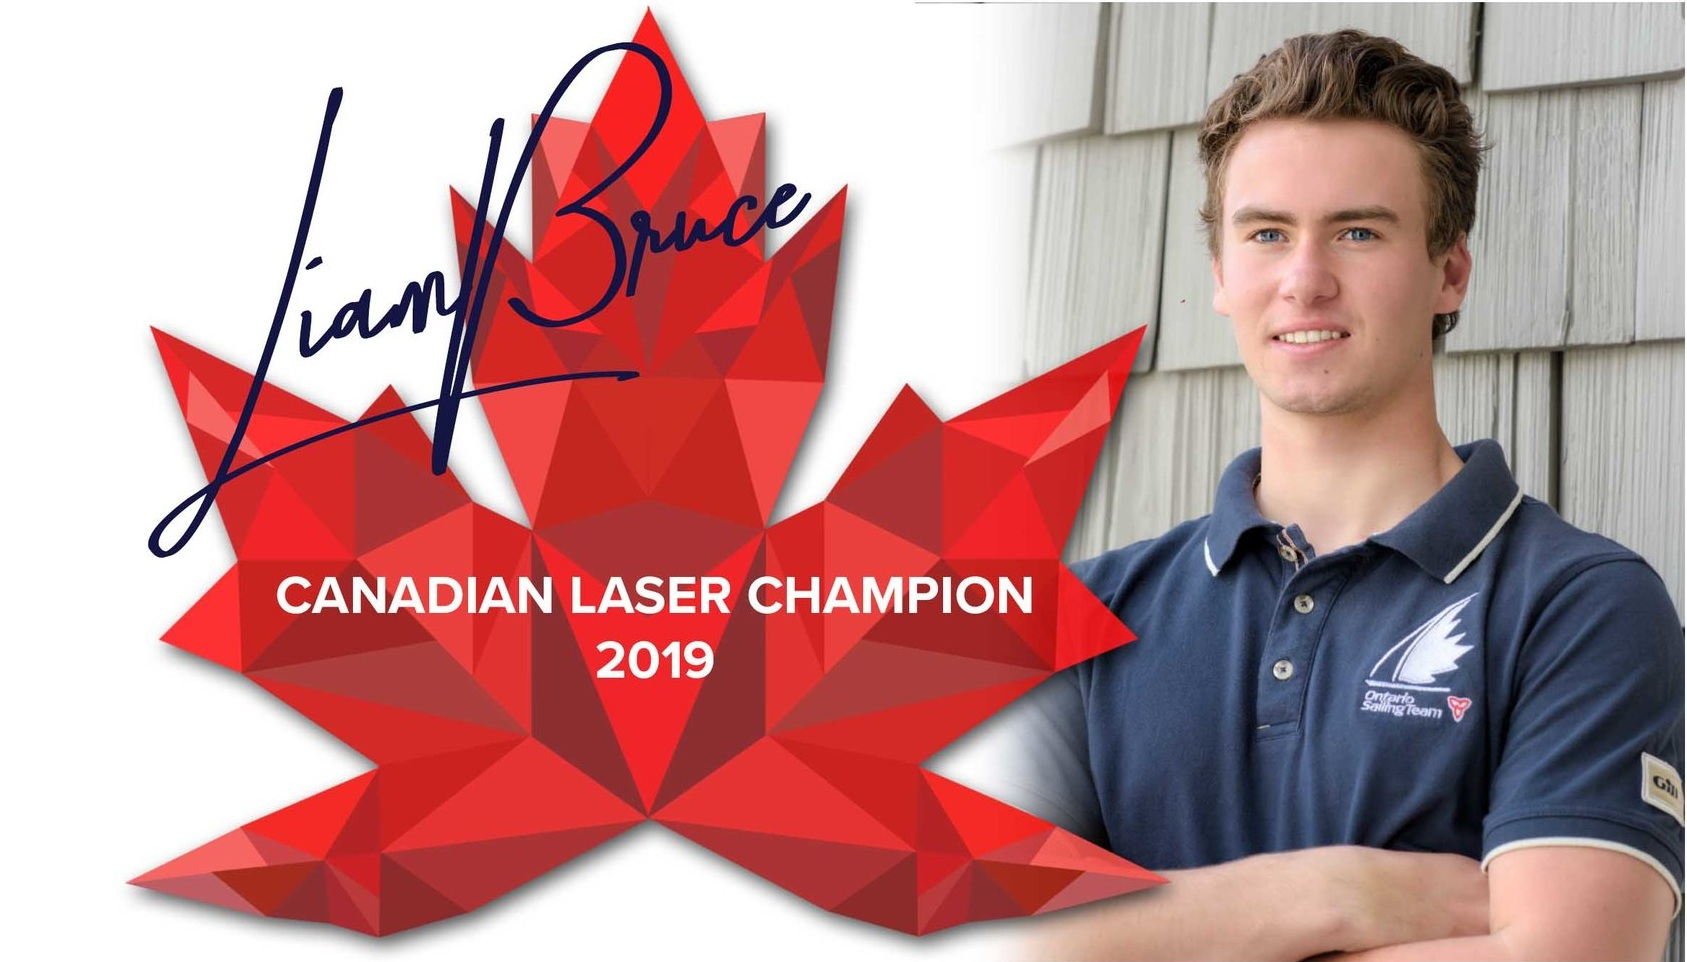 LIAM+BRUCE+-+2019+LASER+CANADIAN+CHAMPION-+RECTANGLE+WITH+SQ+PORTRAIT.jpg